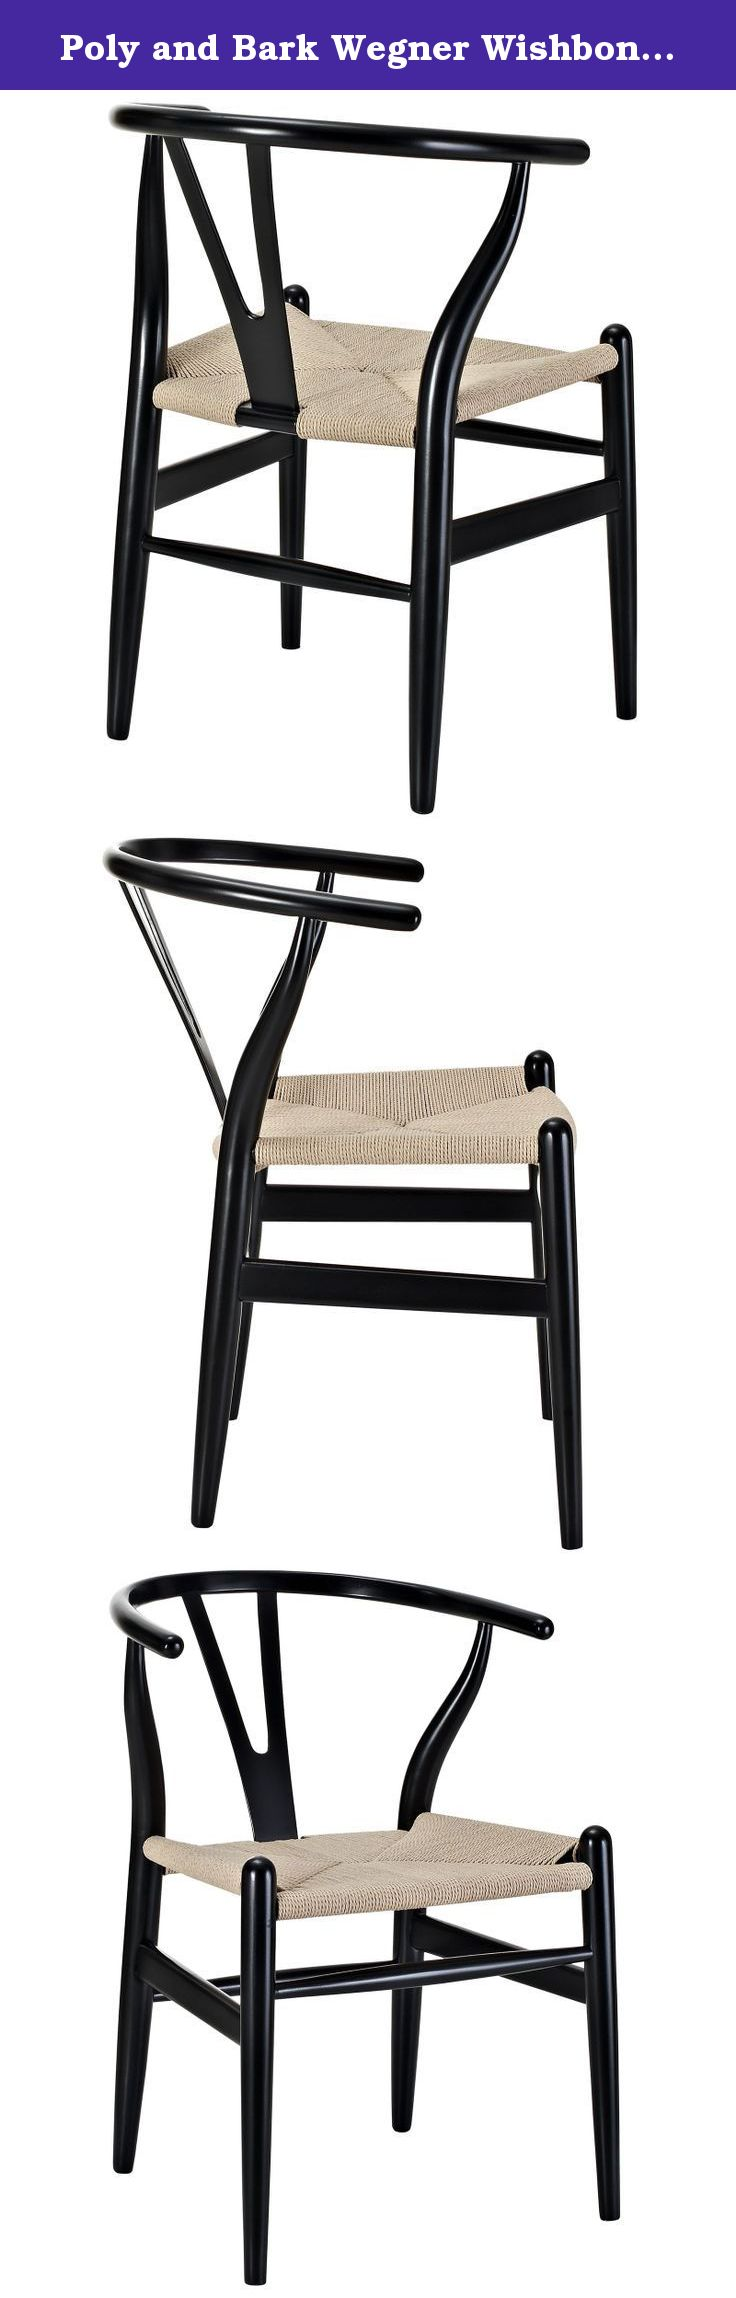 Poly And Bark Wegner Wishbone Style Chair, Black. Designed In 1949 By  Denmarku0027s Foremost